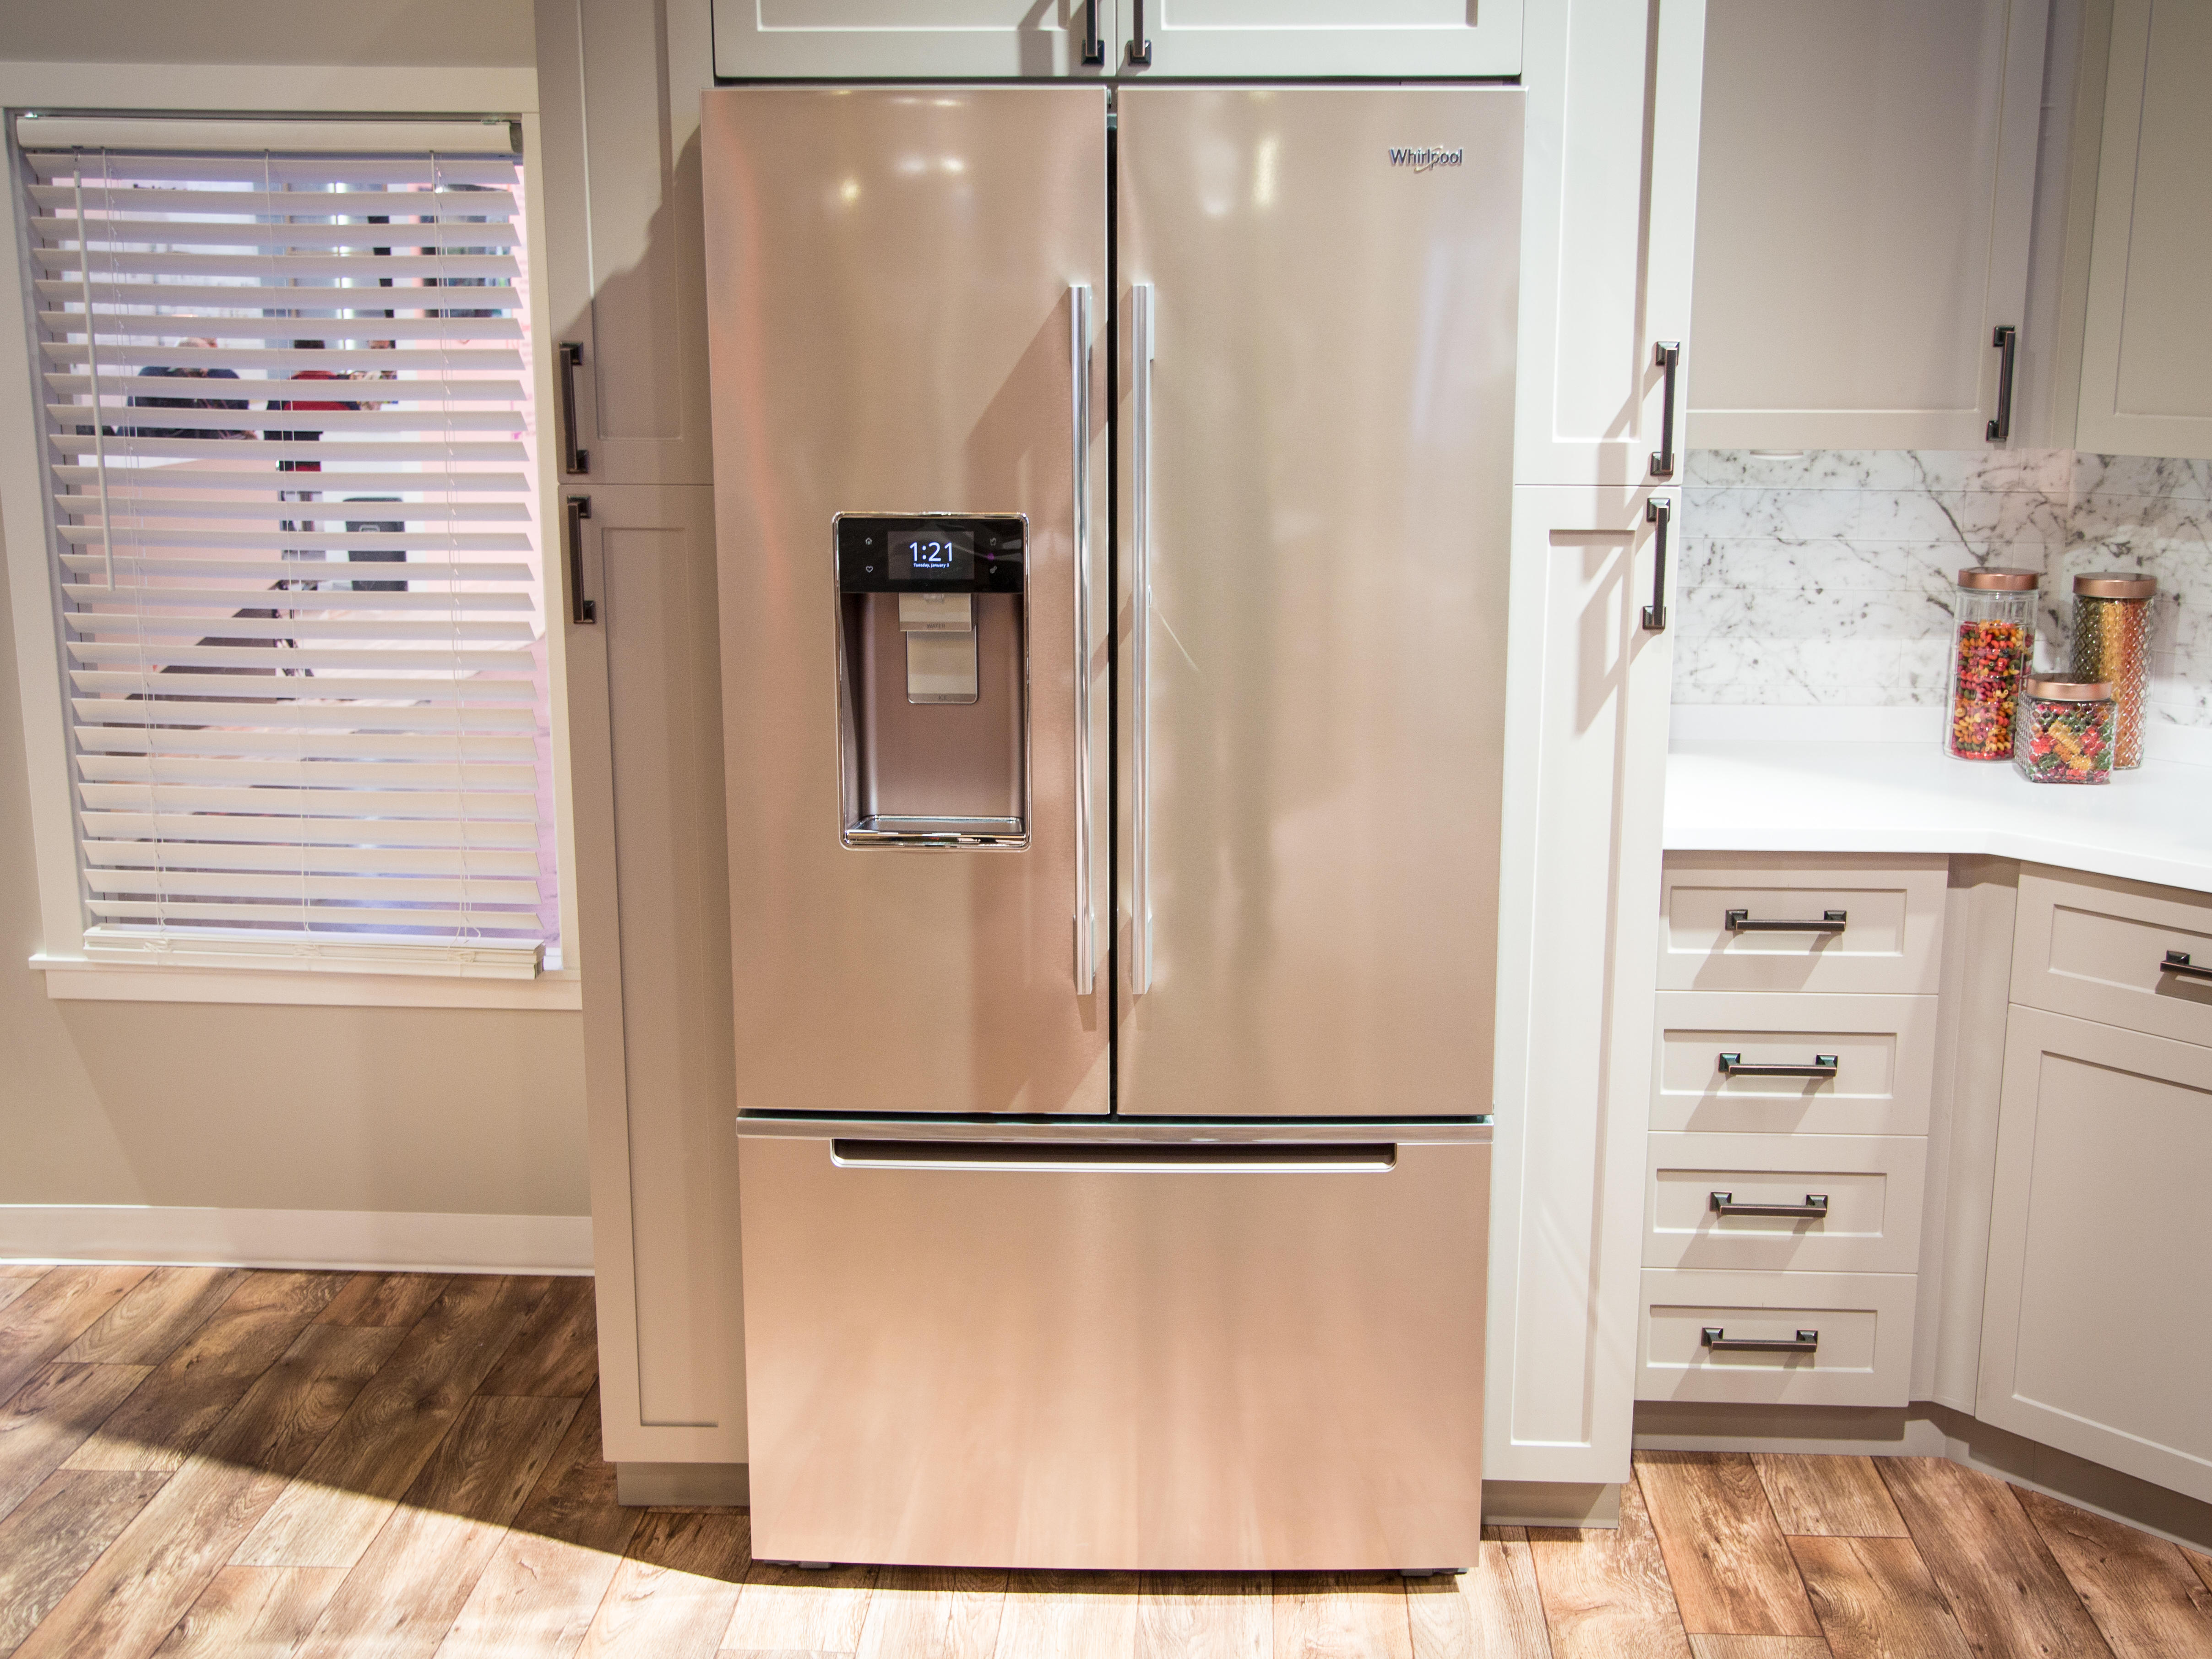 Here S How Whirlpool Could Convince You To Make Your Kitchen Smart Cnet